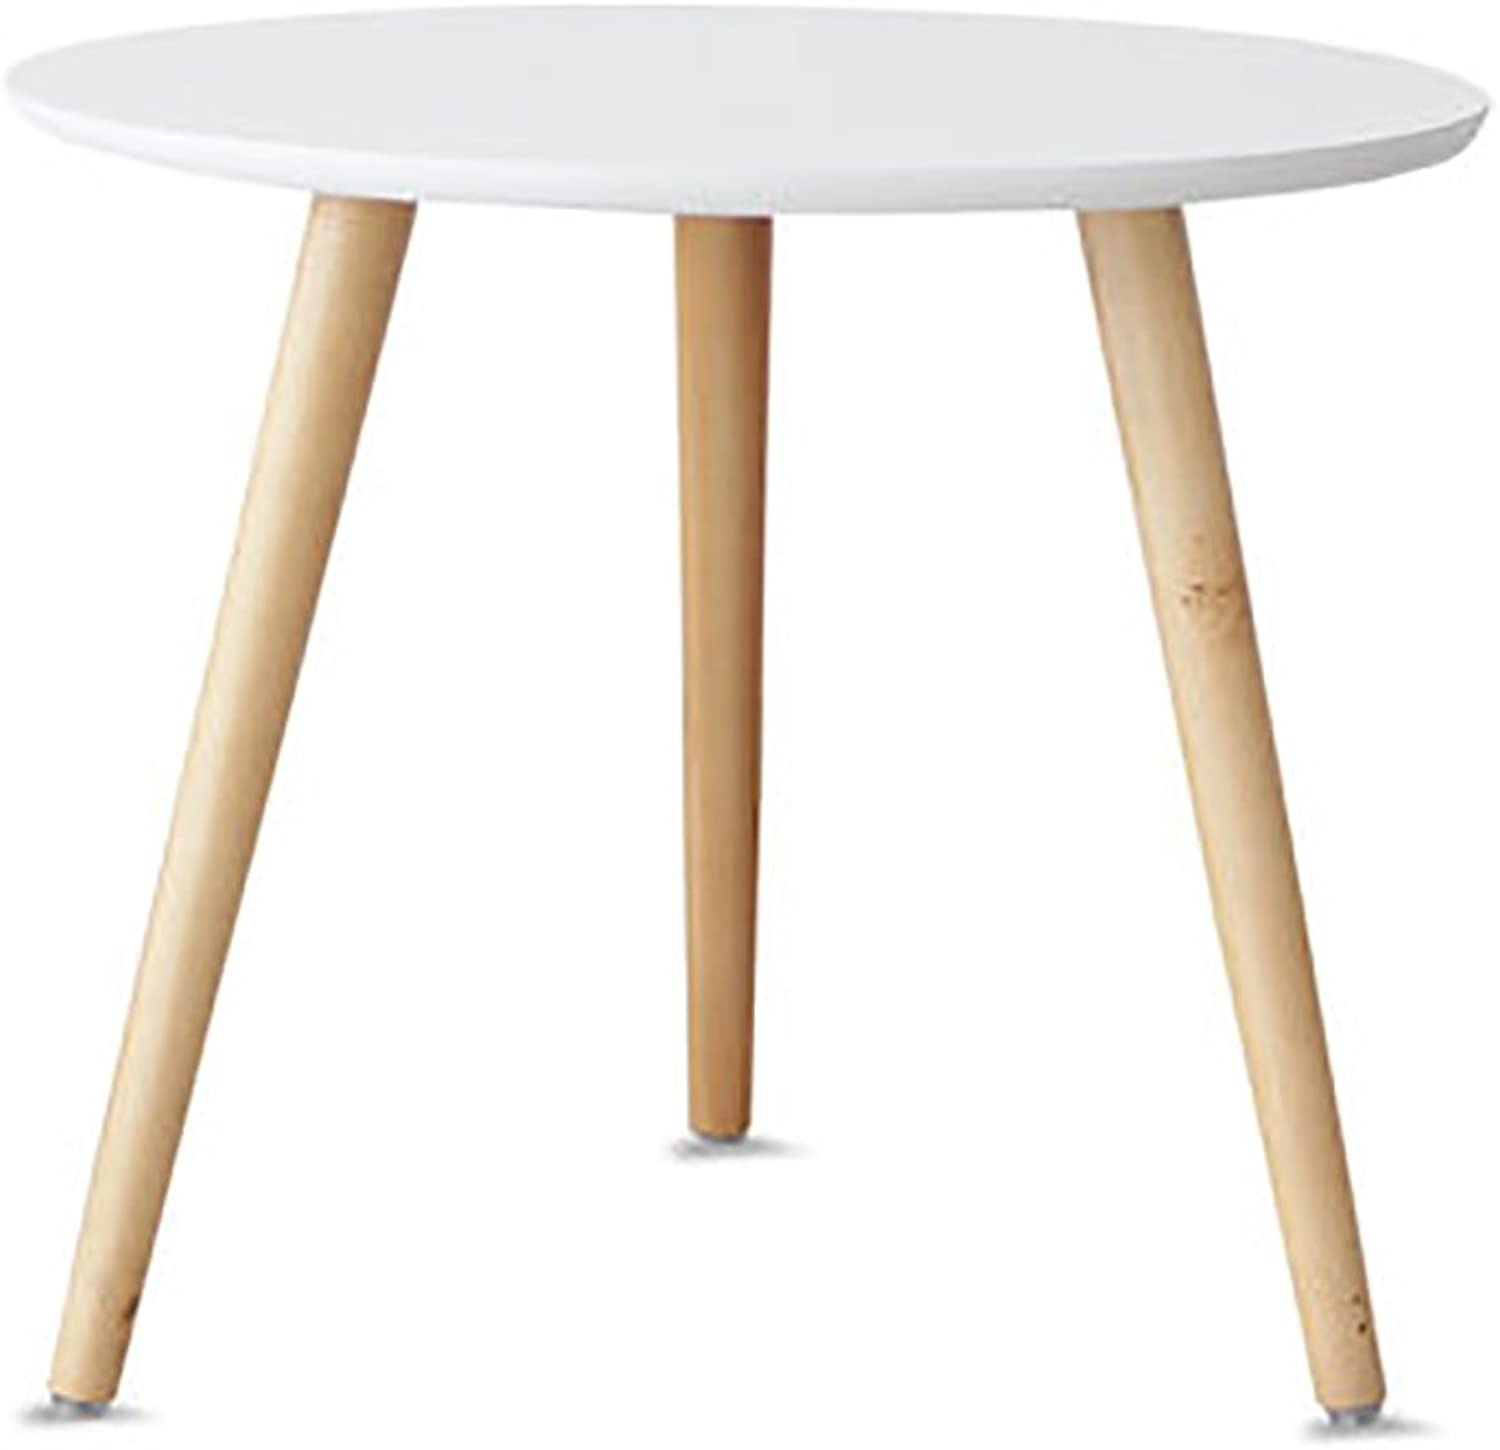 Wood Simple Round Side Table,Living Room Sofa Table Coffee Table Bedroom Night Table Telephone Table-White 50x50cm